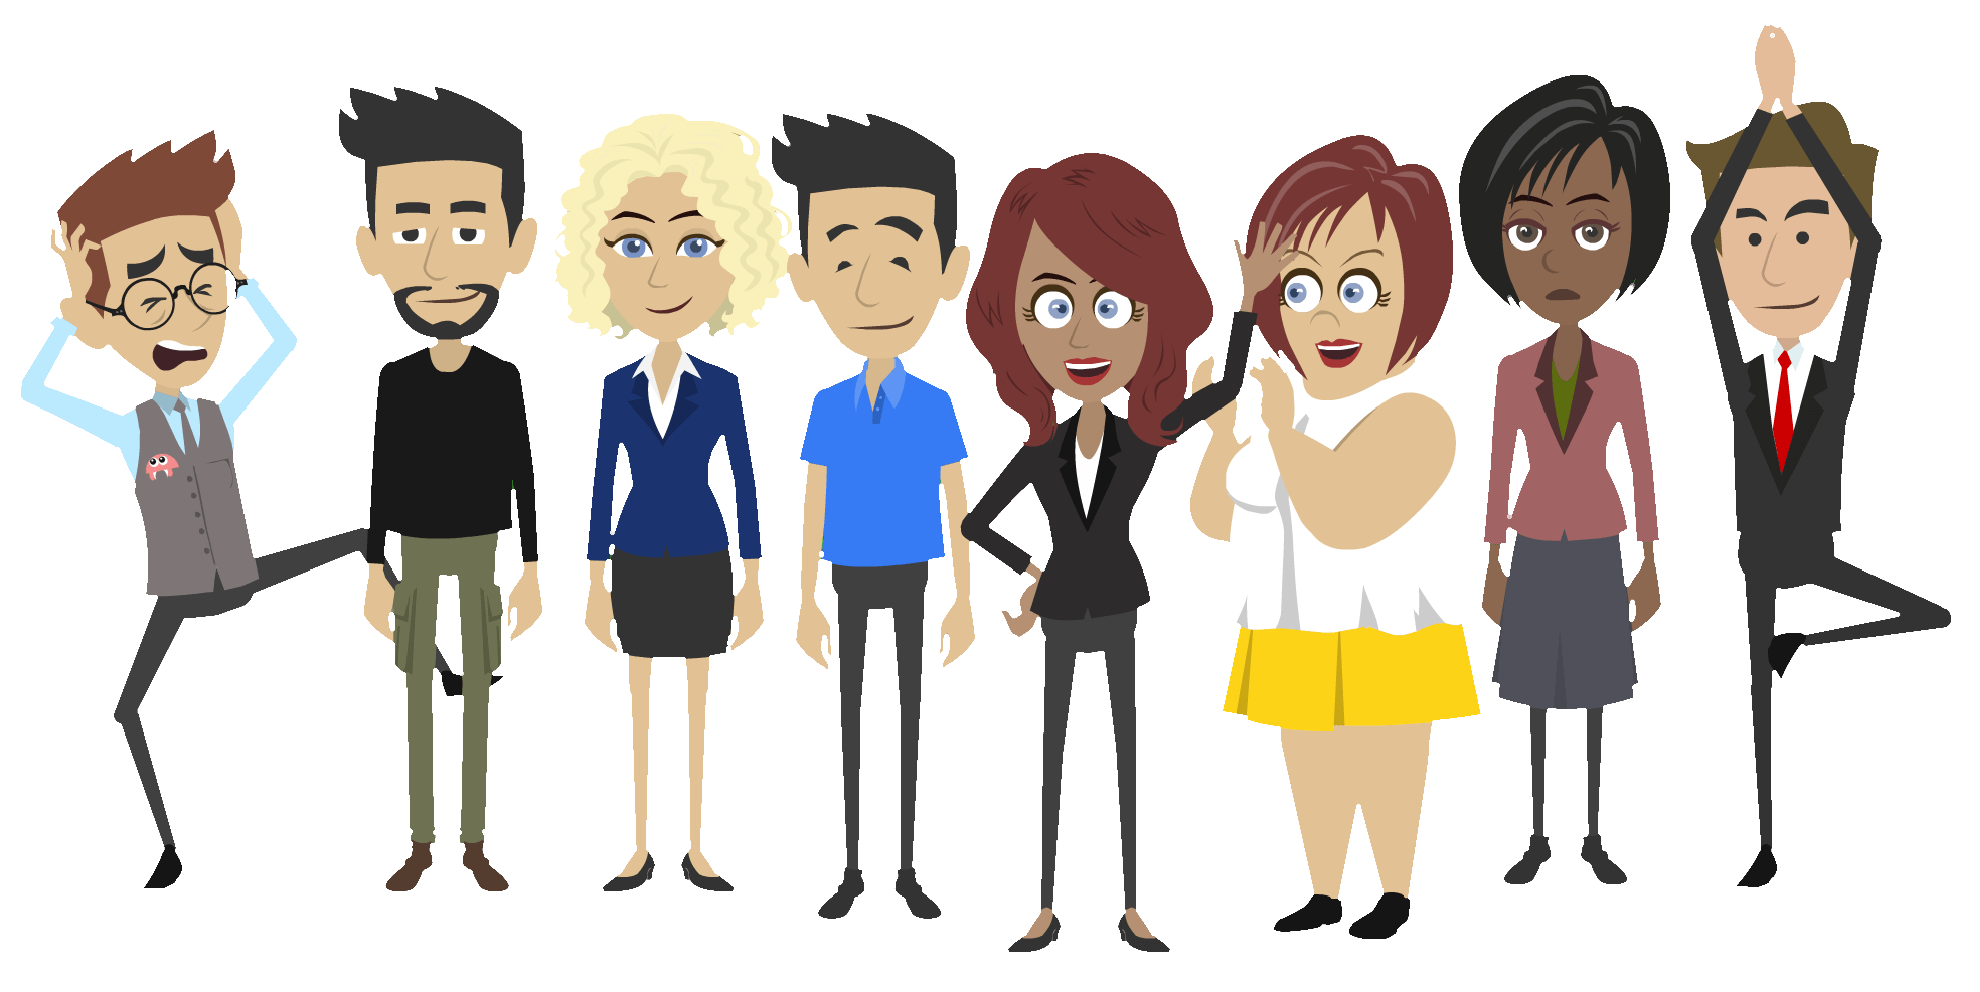 pi team u2122 free project management software project insight group of people clip art free clipart of group of people dining